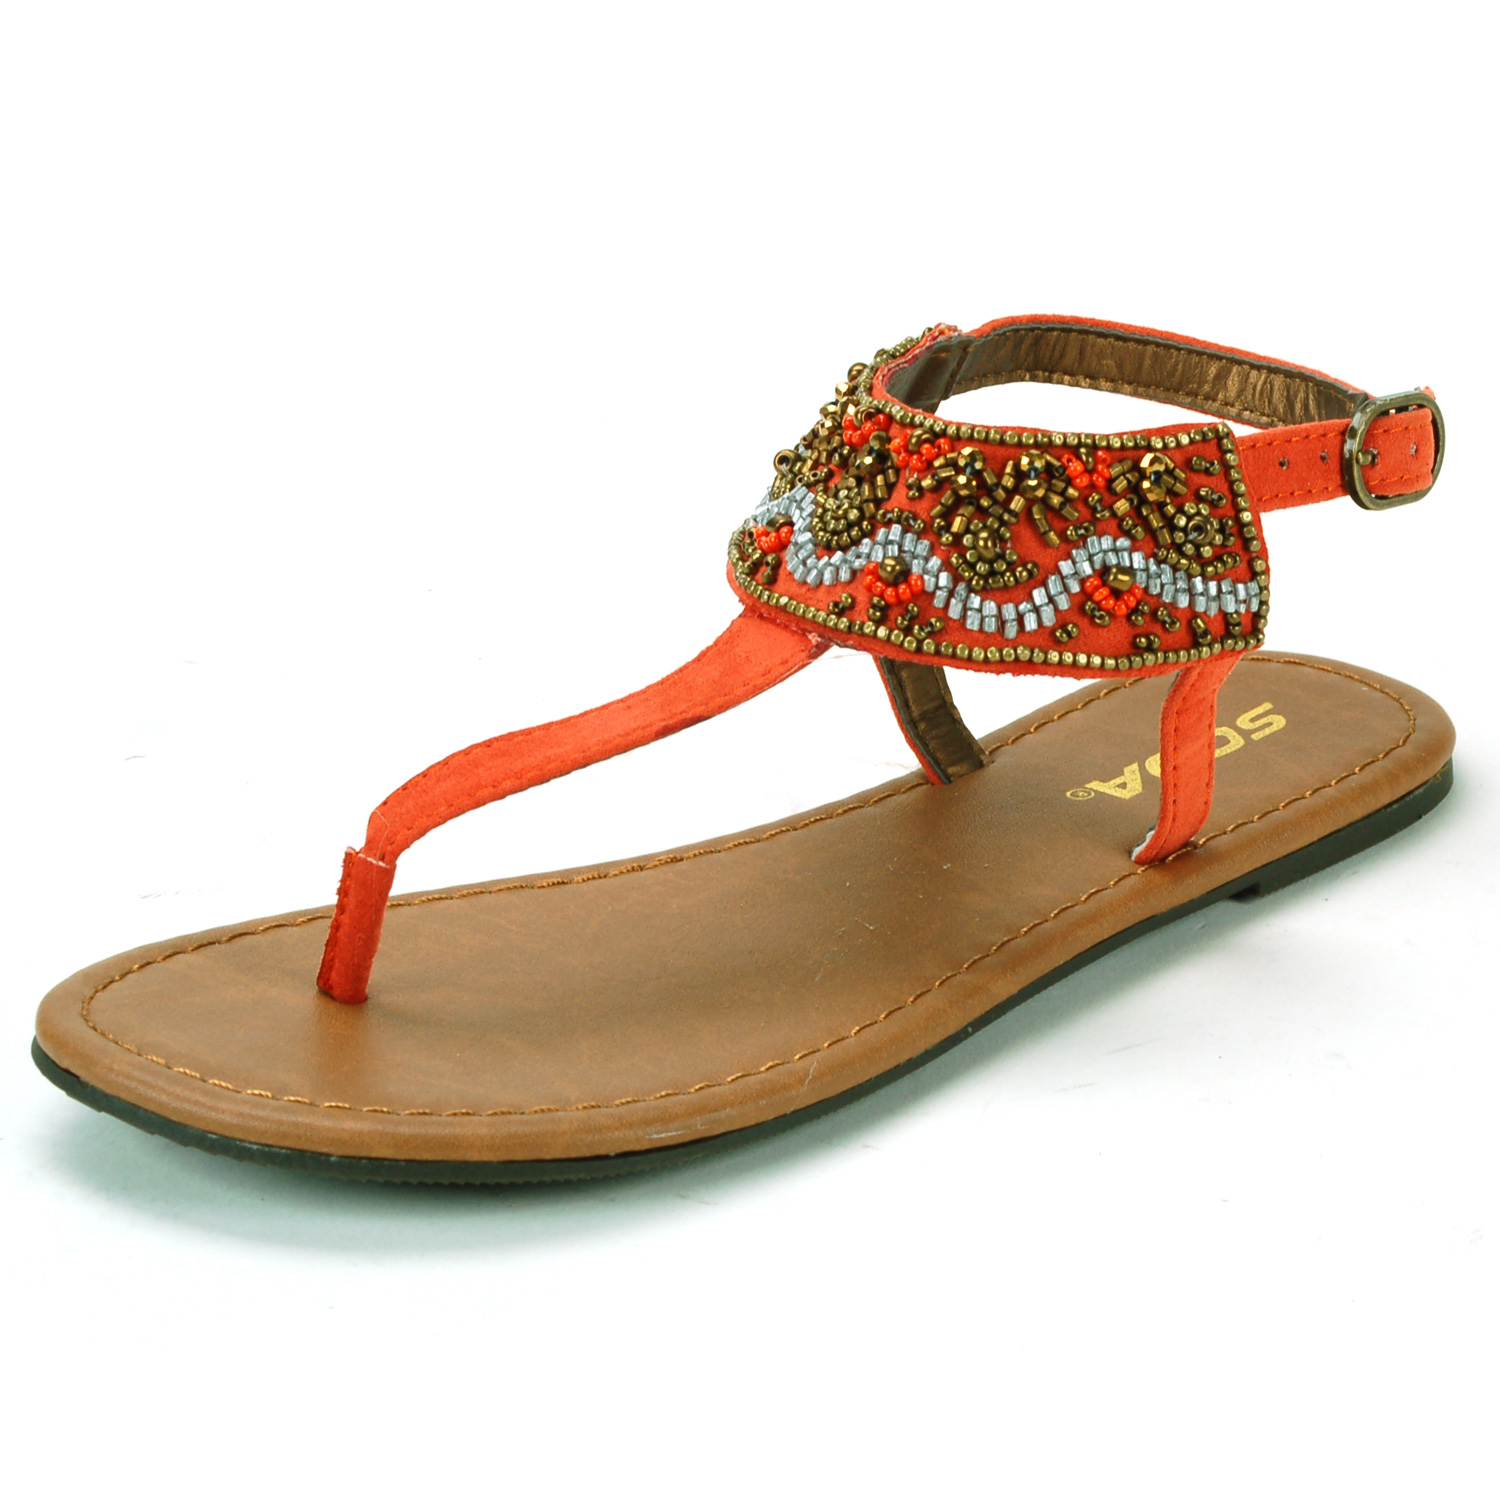 Sandals shoes